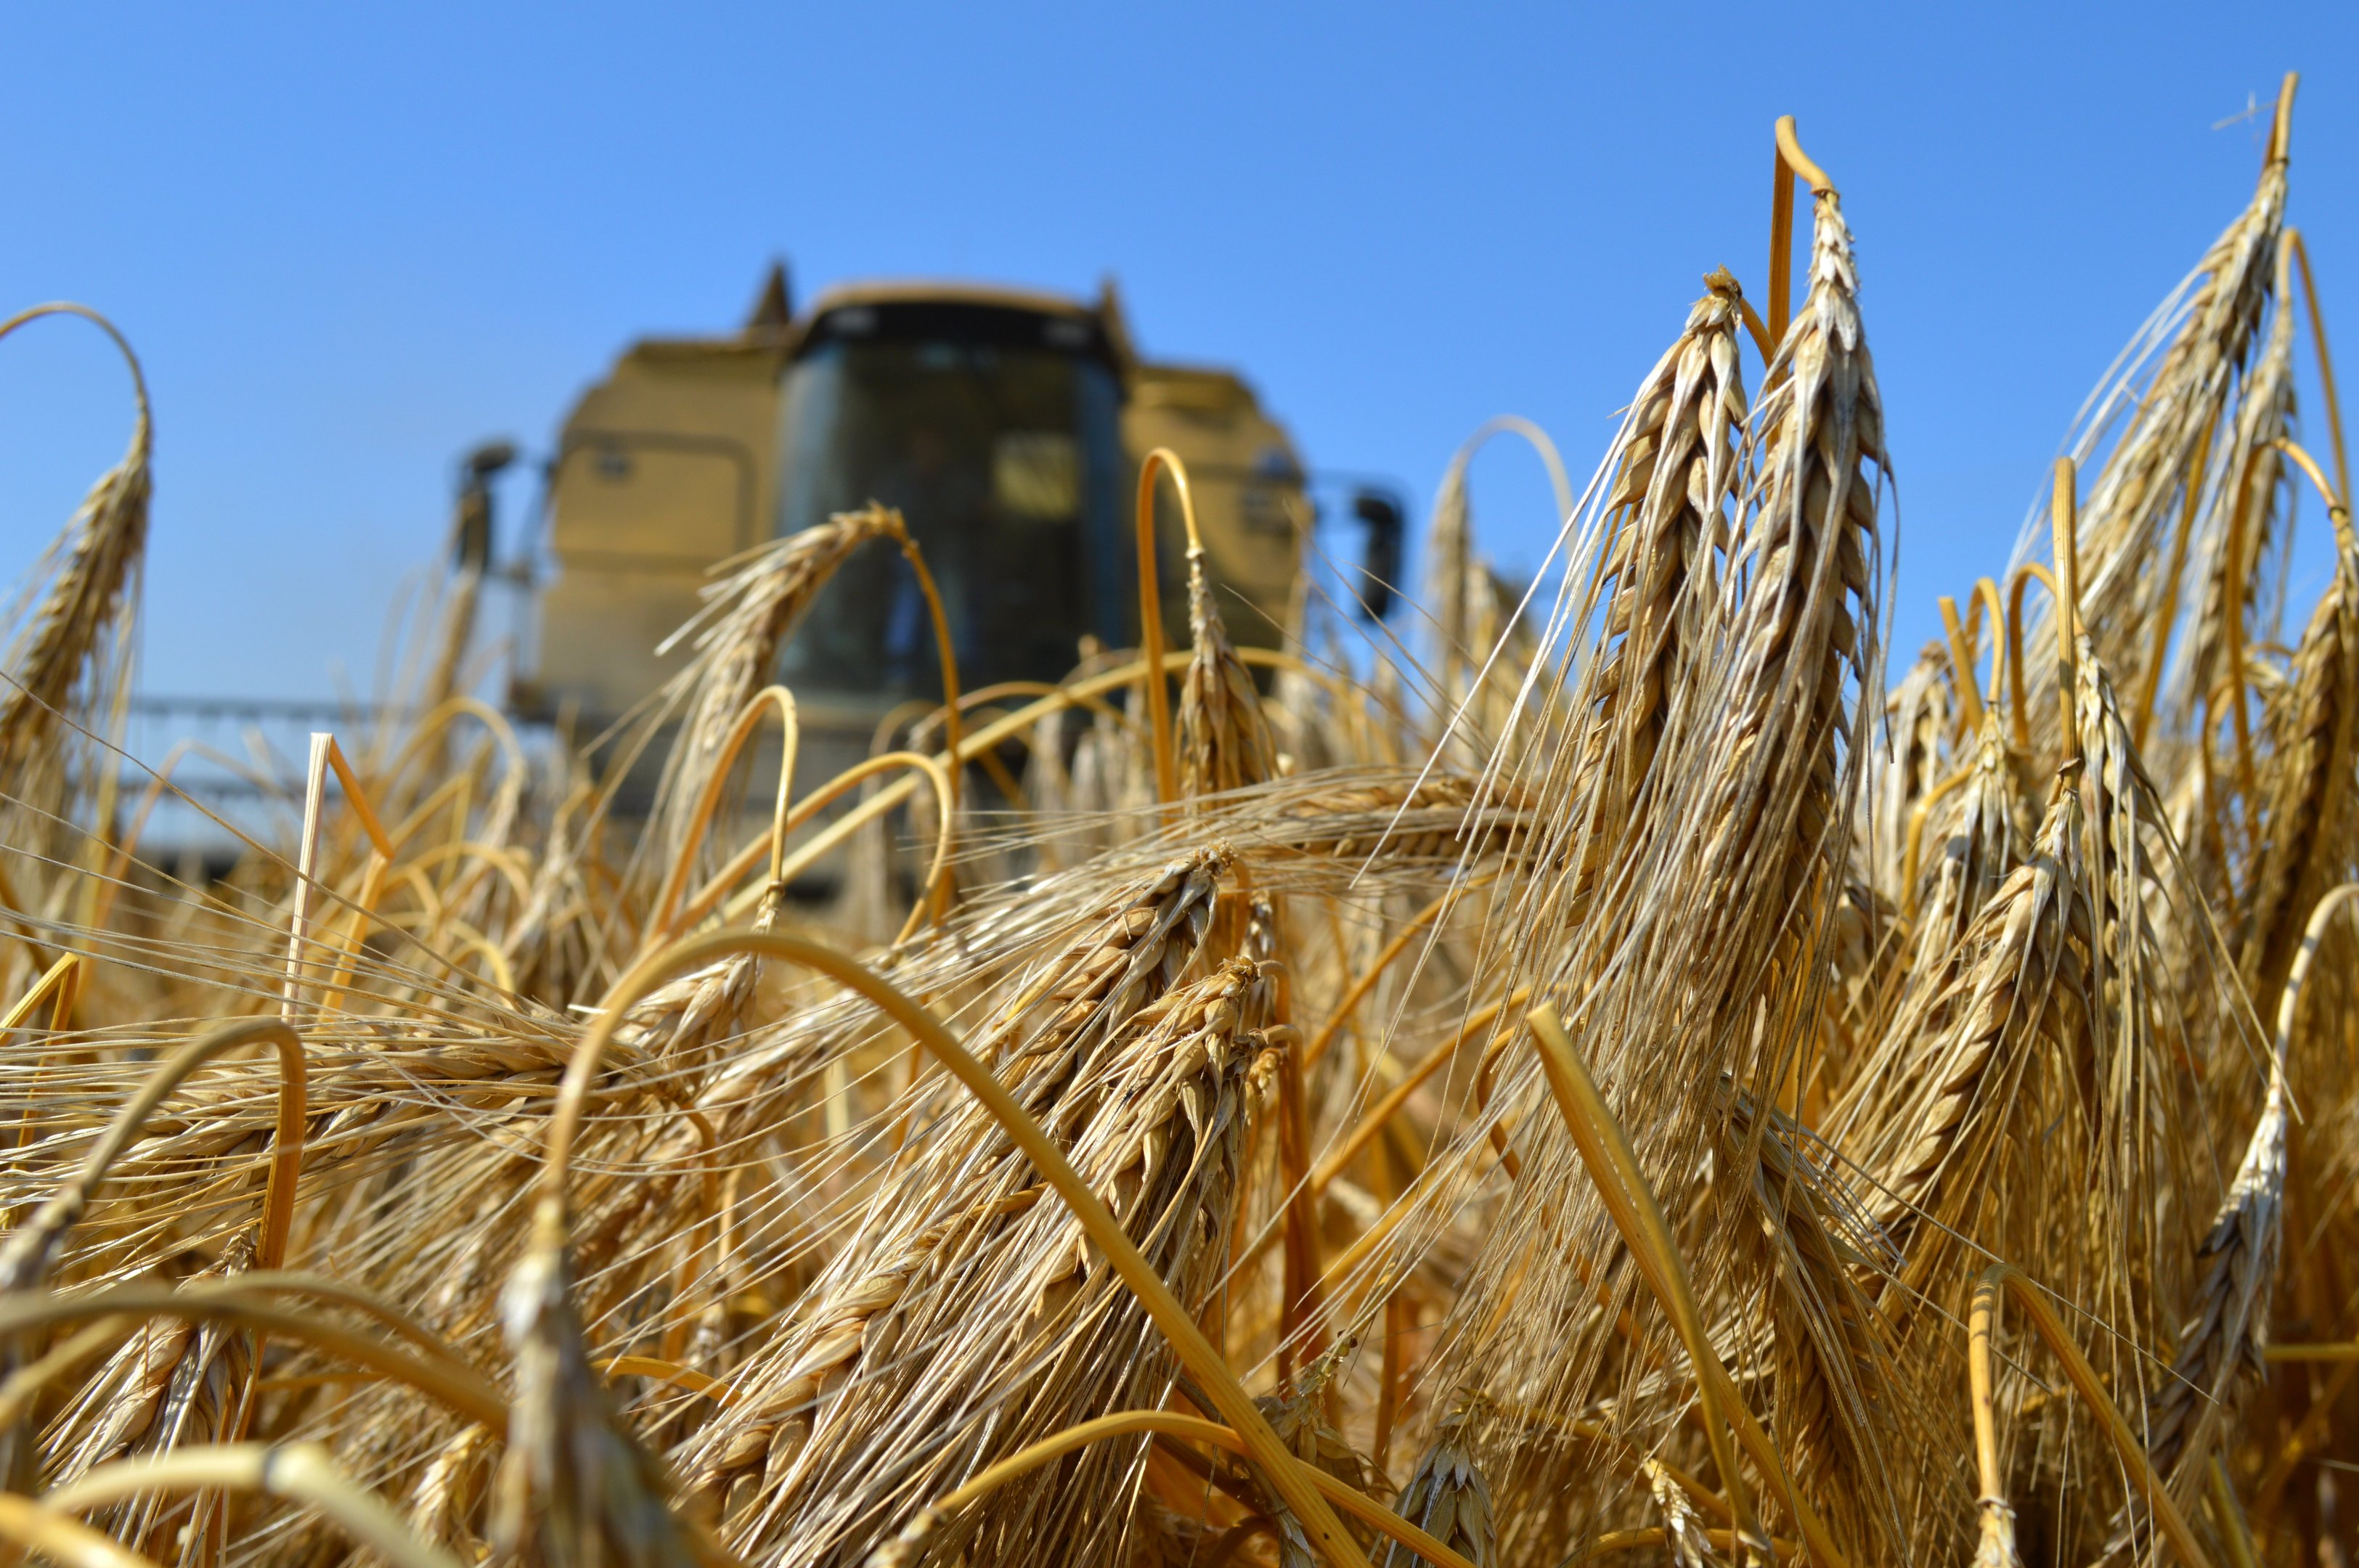 The winter barley harvest is two thirds complete